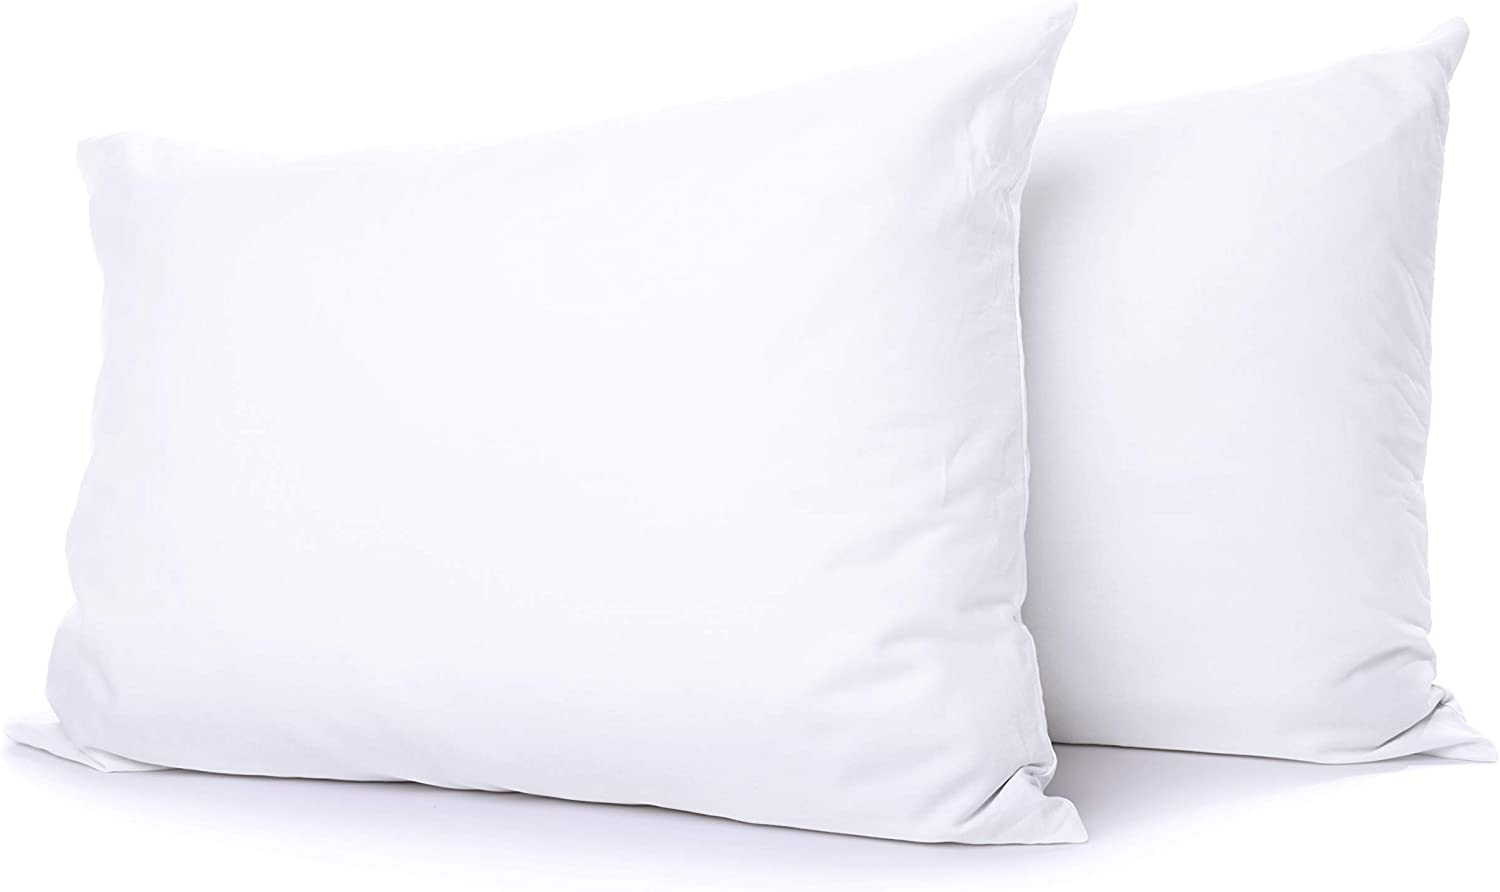 Cotton outlet Delight Standard Pillow Cases Set 2 White of 100% Max 57% OFF Natural